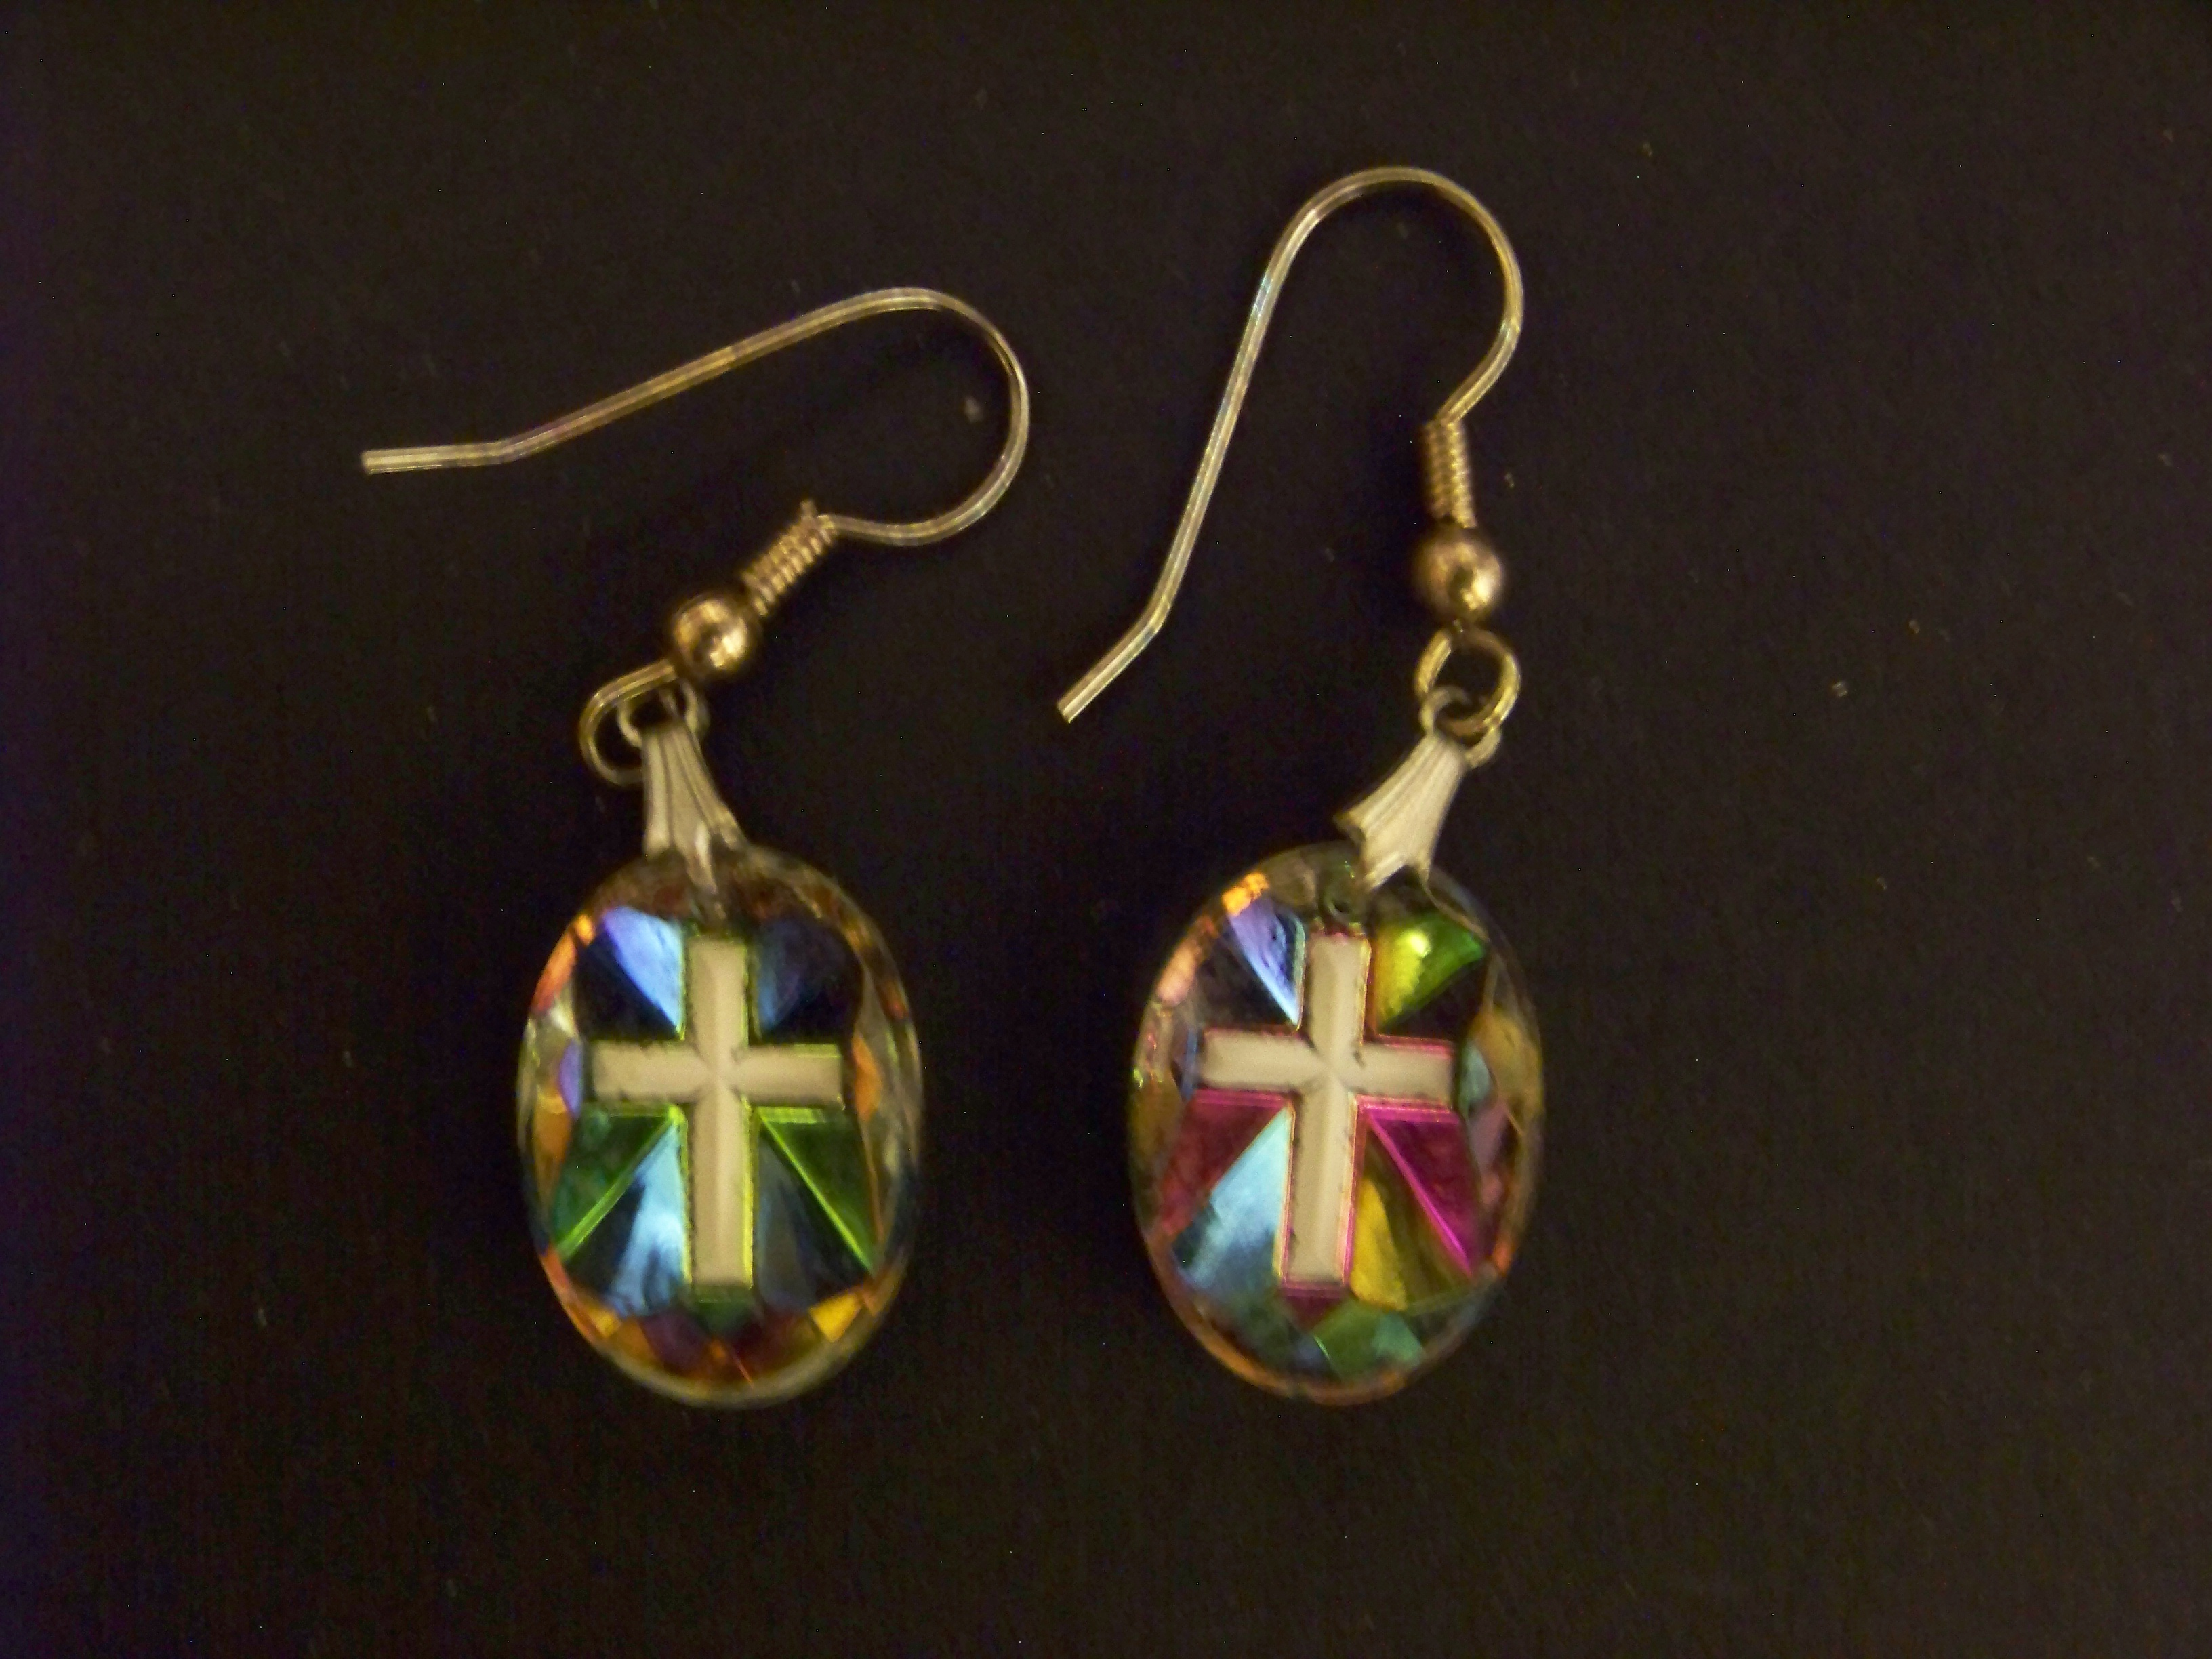 Crucifix Earrings with Aurora Borealis Effect c1950